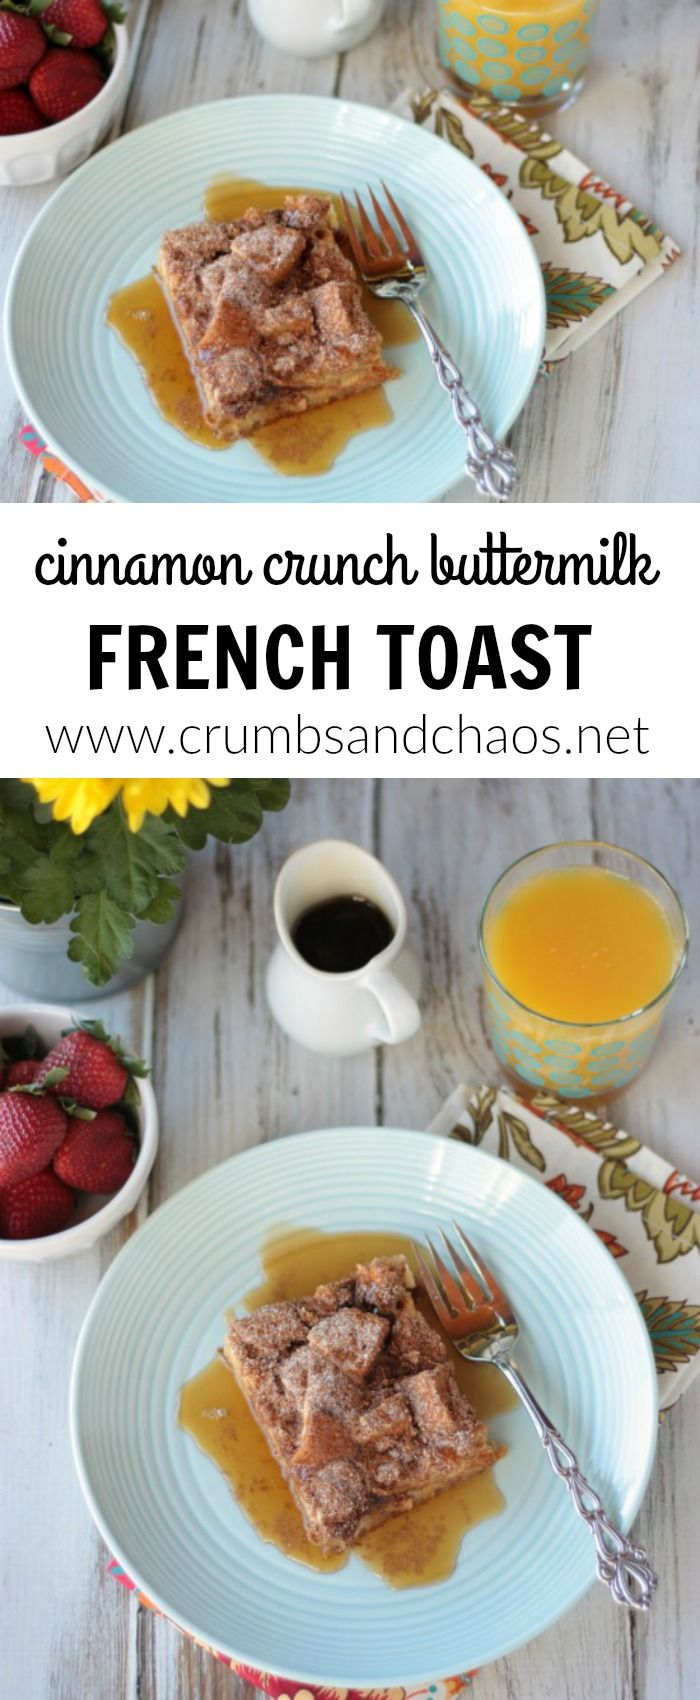 Easy and delicious, Cinnamon Crunch Buttermilk French Toast is always a winner! Make this the night before and enjoy a hot breakfast without any fuss in the morning! via @crumbsandchaos